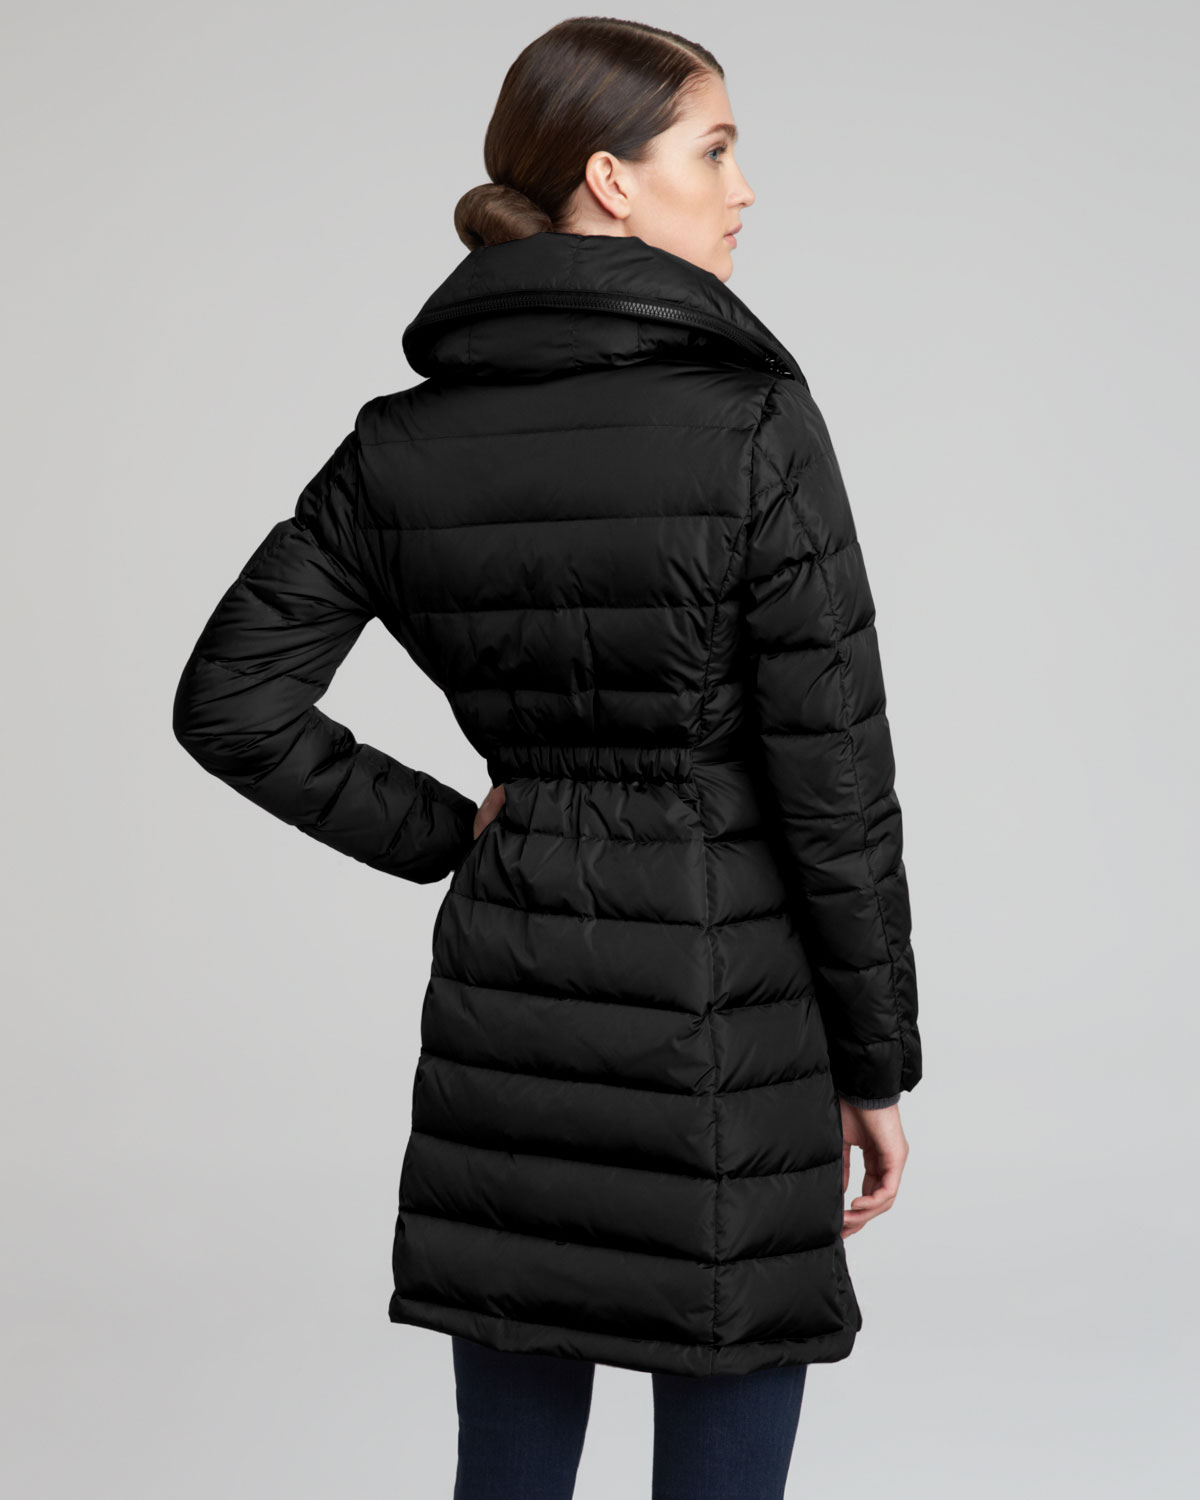 Moncler Long Puffer Coat In Black Lyst